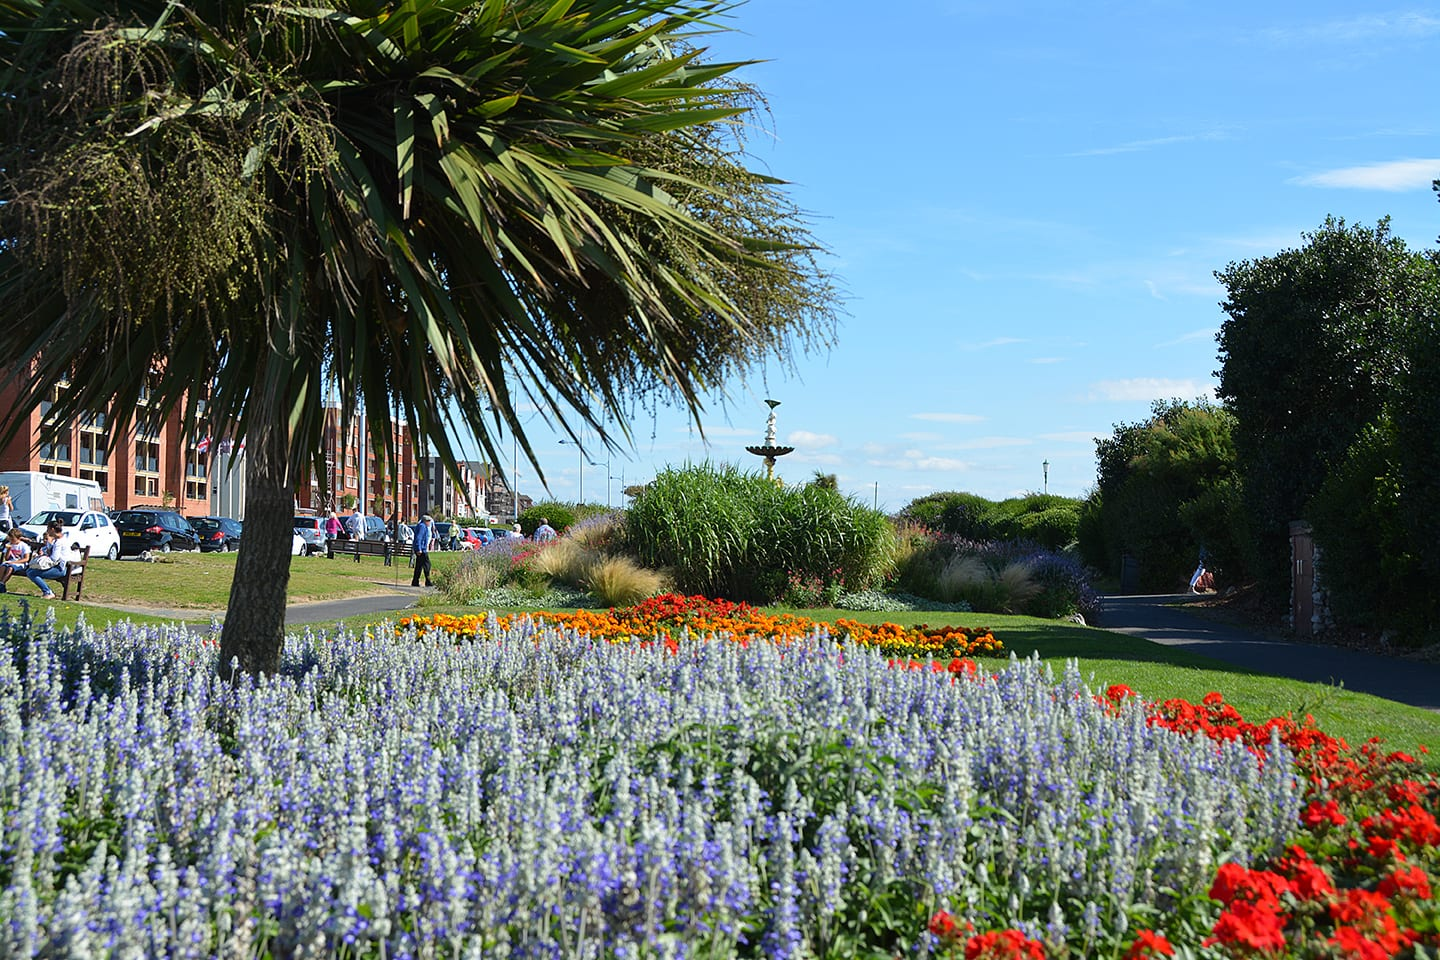 St Annes seafront gardens